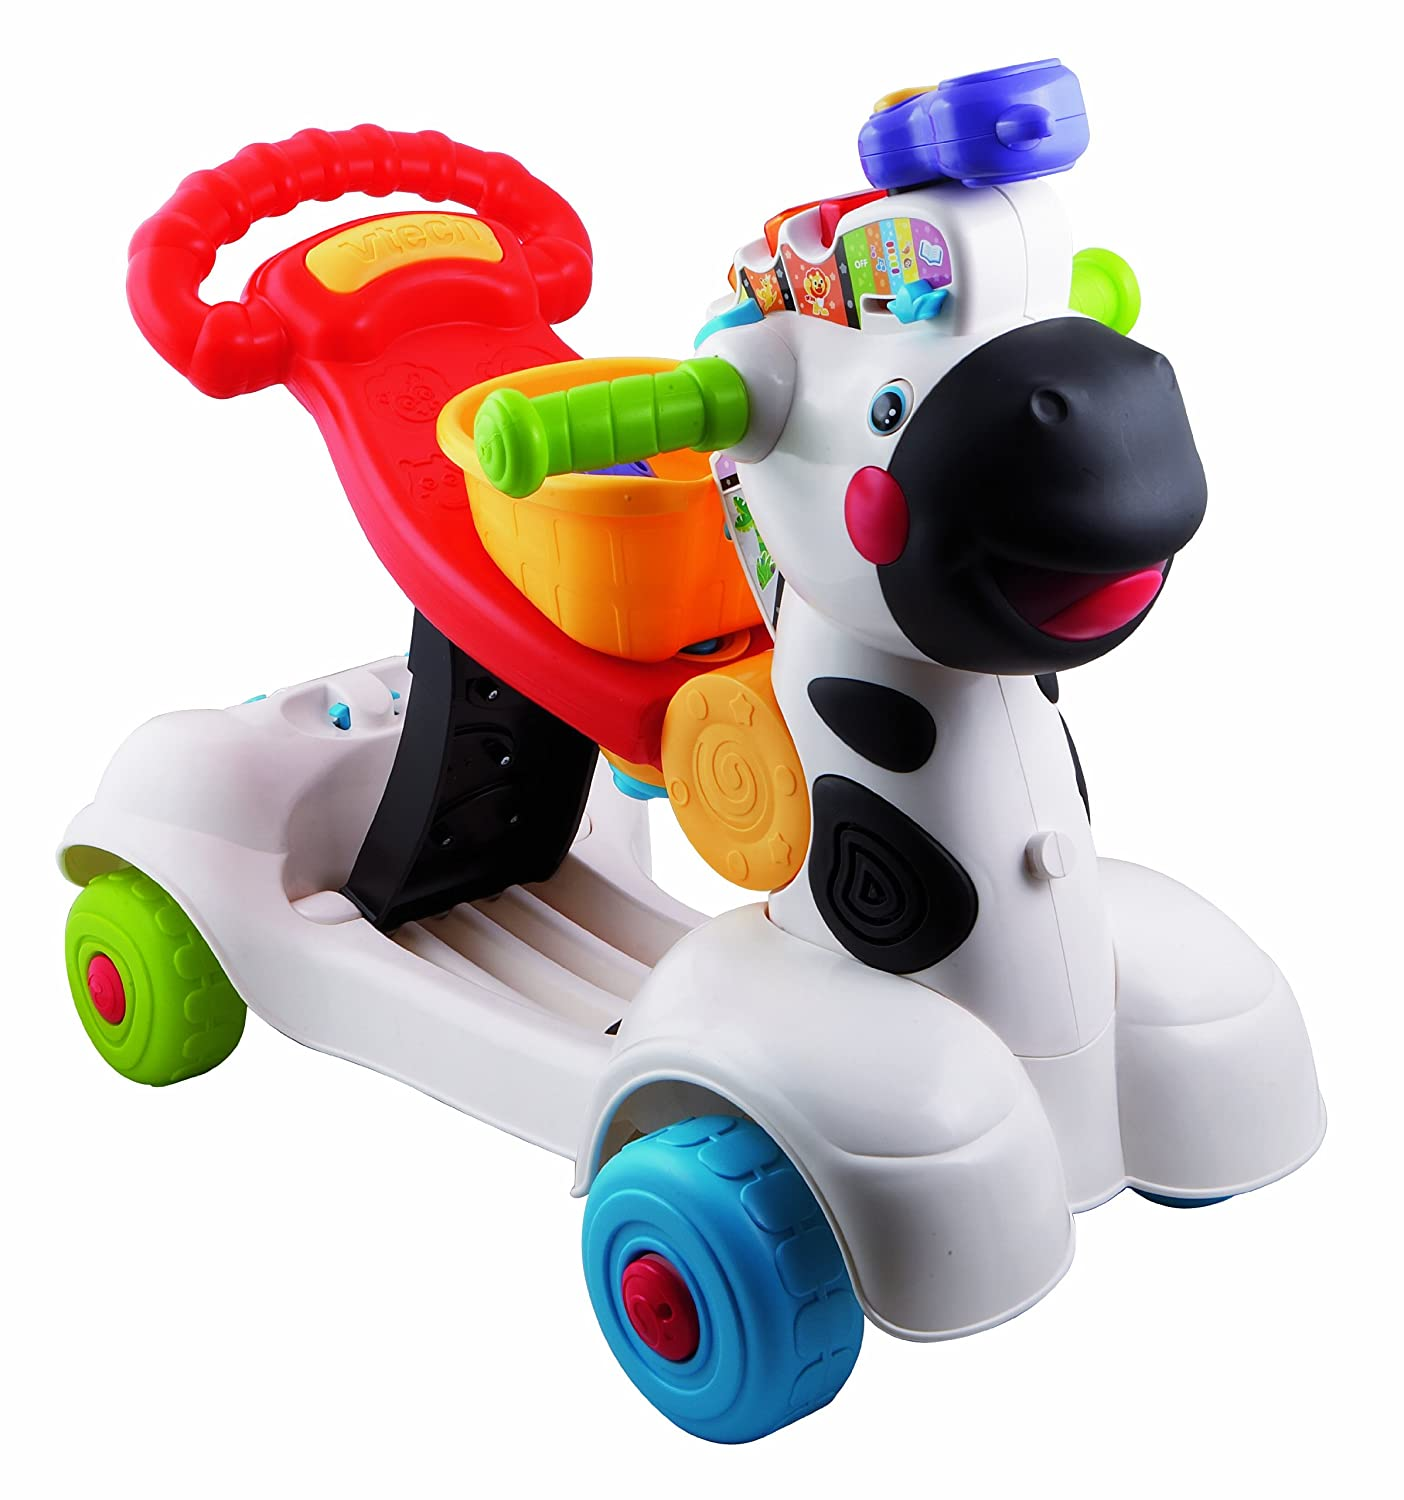 Amazon.com: Vtech Infantil – cebra Scooter: Toys & Games